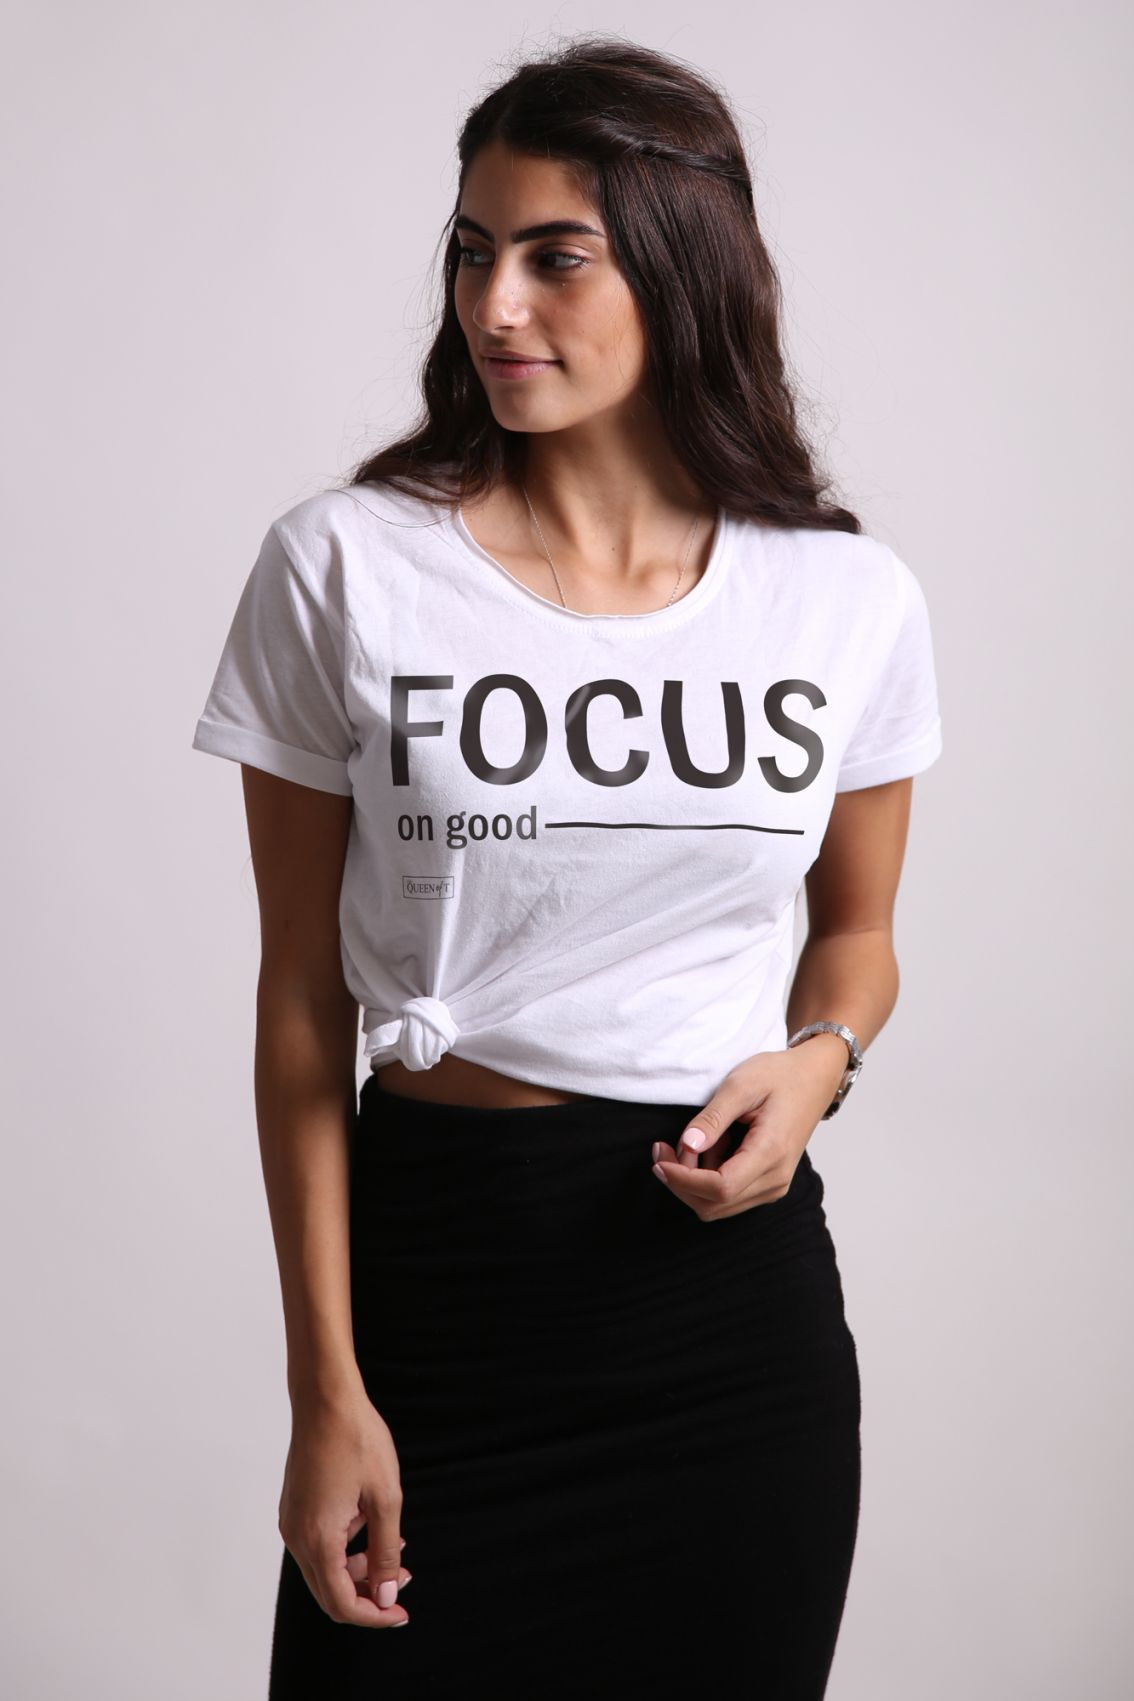 FOCUS on good - Tshirt